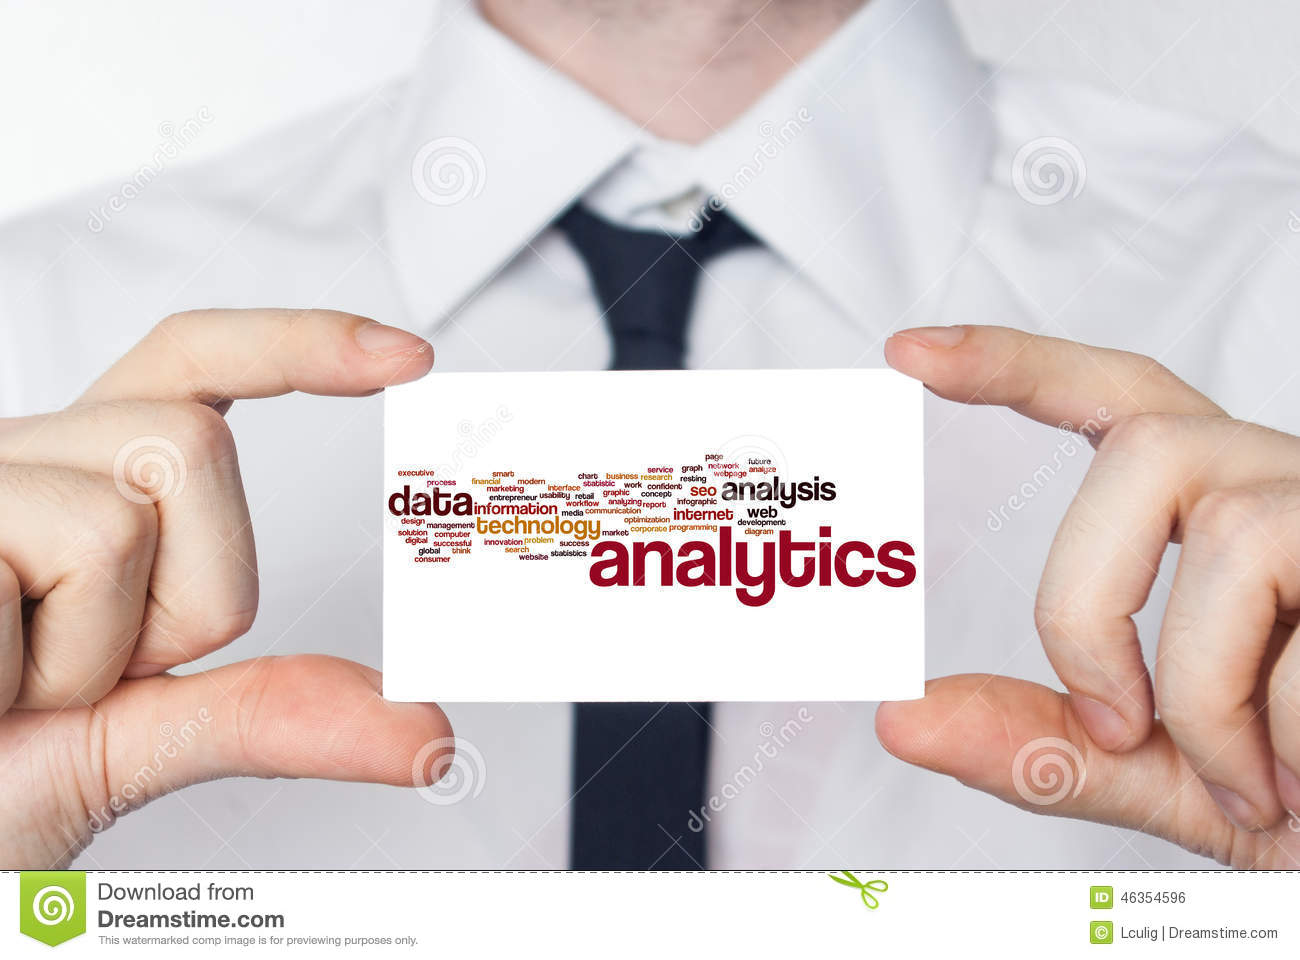 Analytics. Businessman in white shirt with a black tie showing o